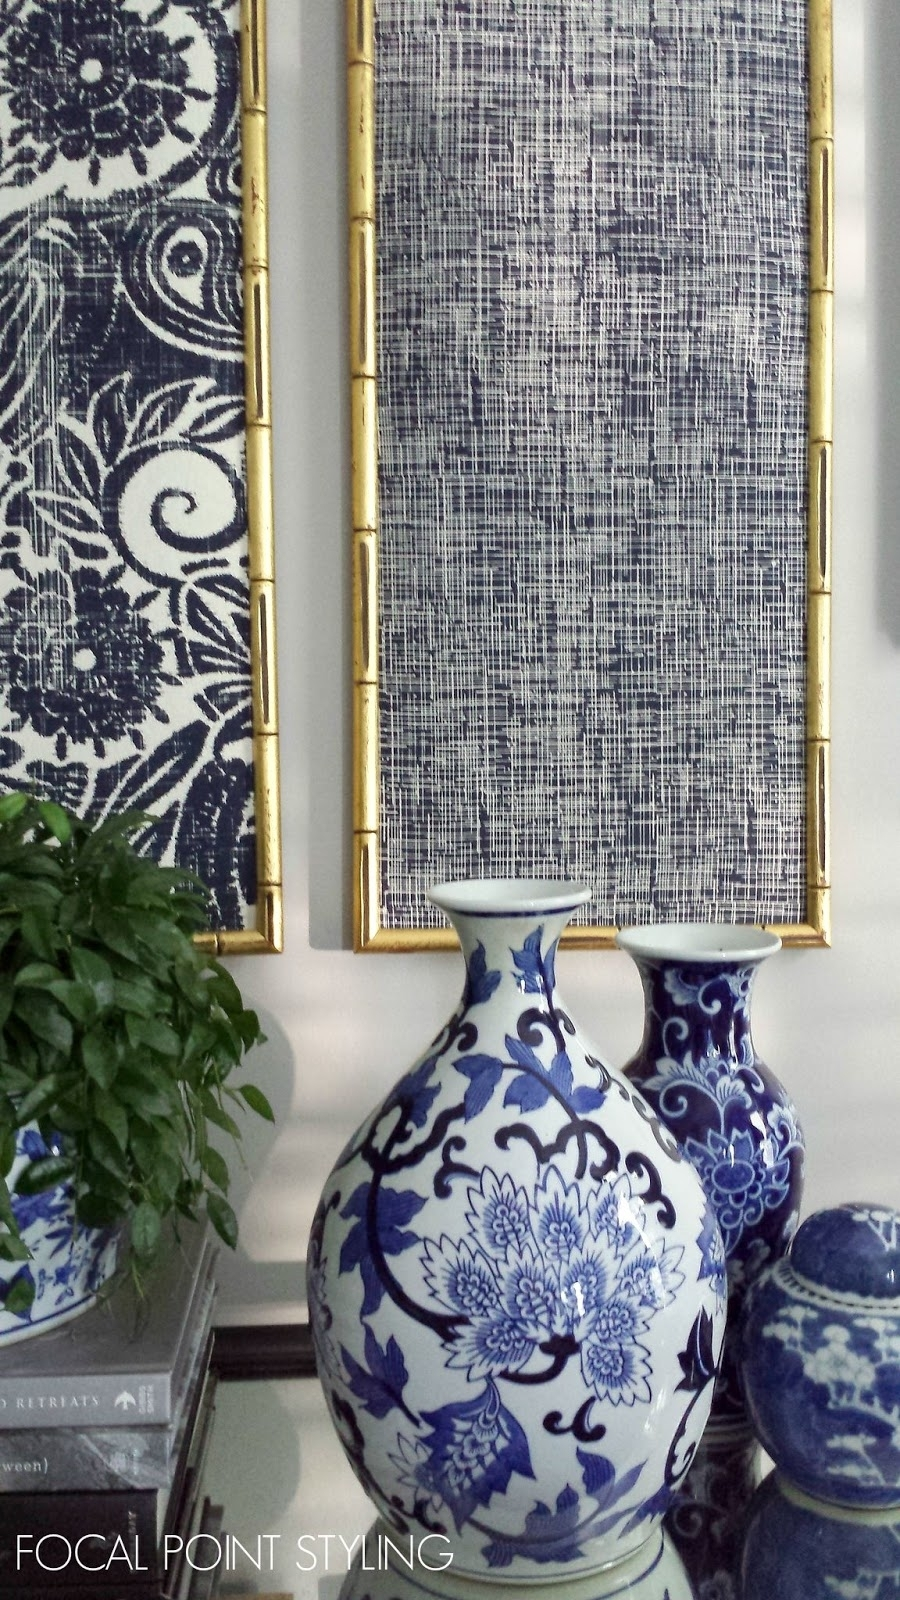 Framed Wall Art At Home And Interior Design Ideas With Regard To 2017 Ikat Fabric Wall Art (View 12 of 15)